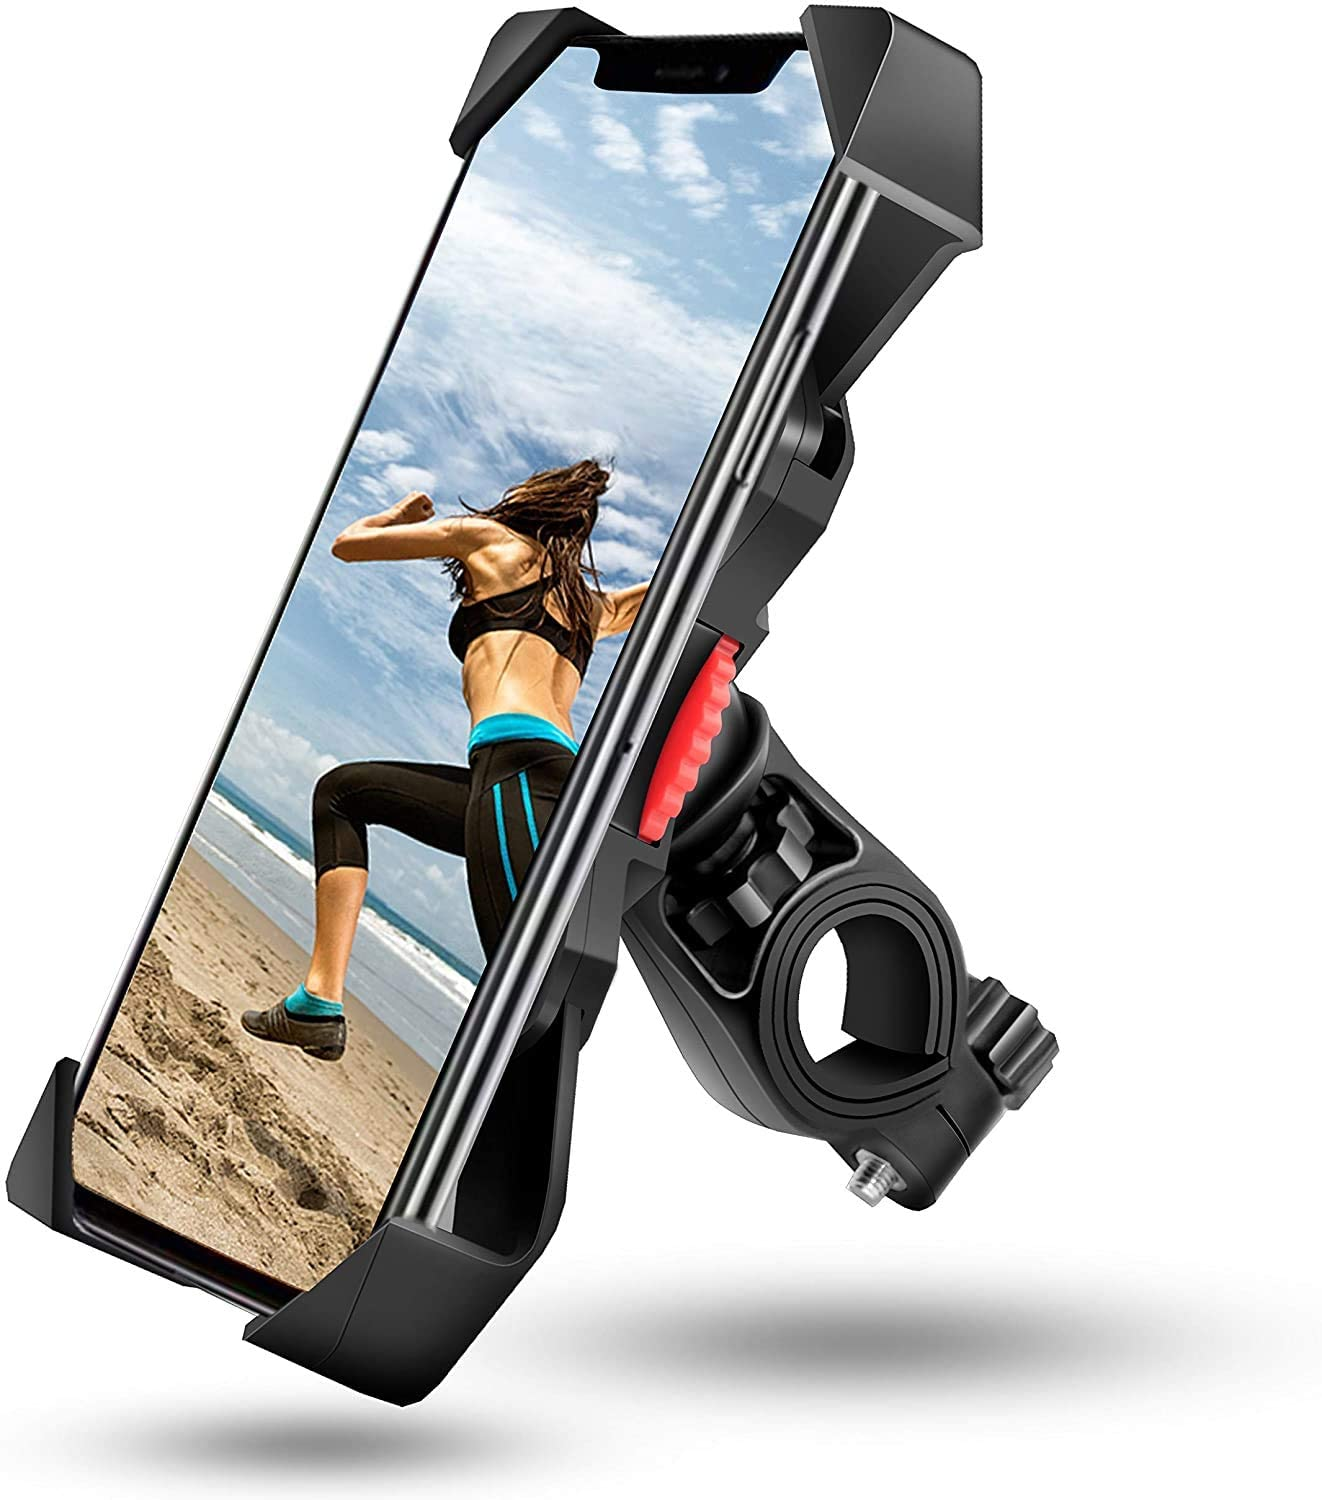 Aikzik Bike Phone Mount, Motorcycle Phone Mount 360° Rotation Bicycle Phone Holder Fits Phone Xs Max XR X 8 7 6 Plus, Samsung S10 9 8, Galaxy S9 8 7, Google Pixel, GPS Other Devices from 3.5